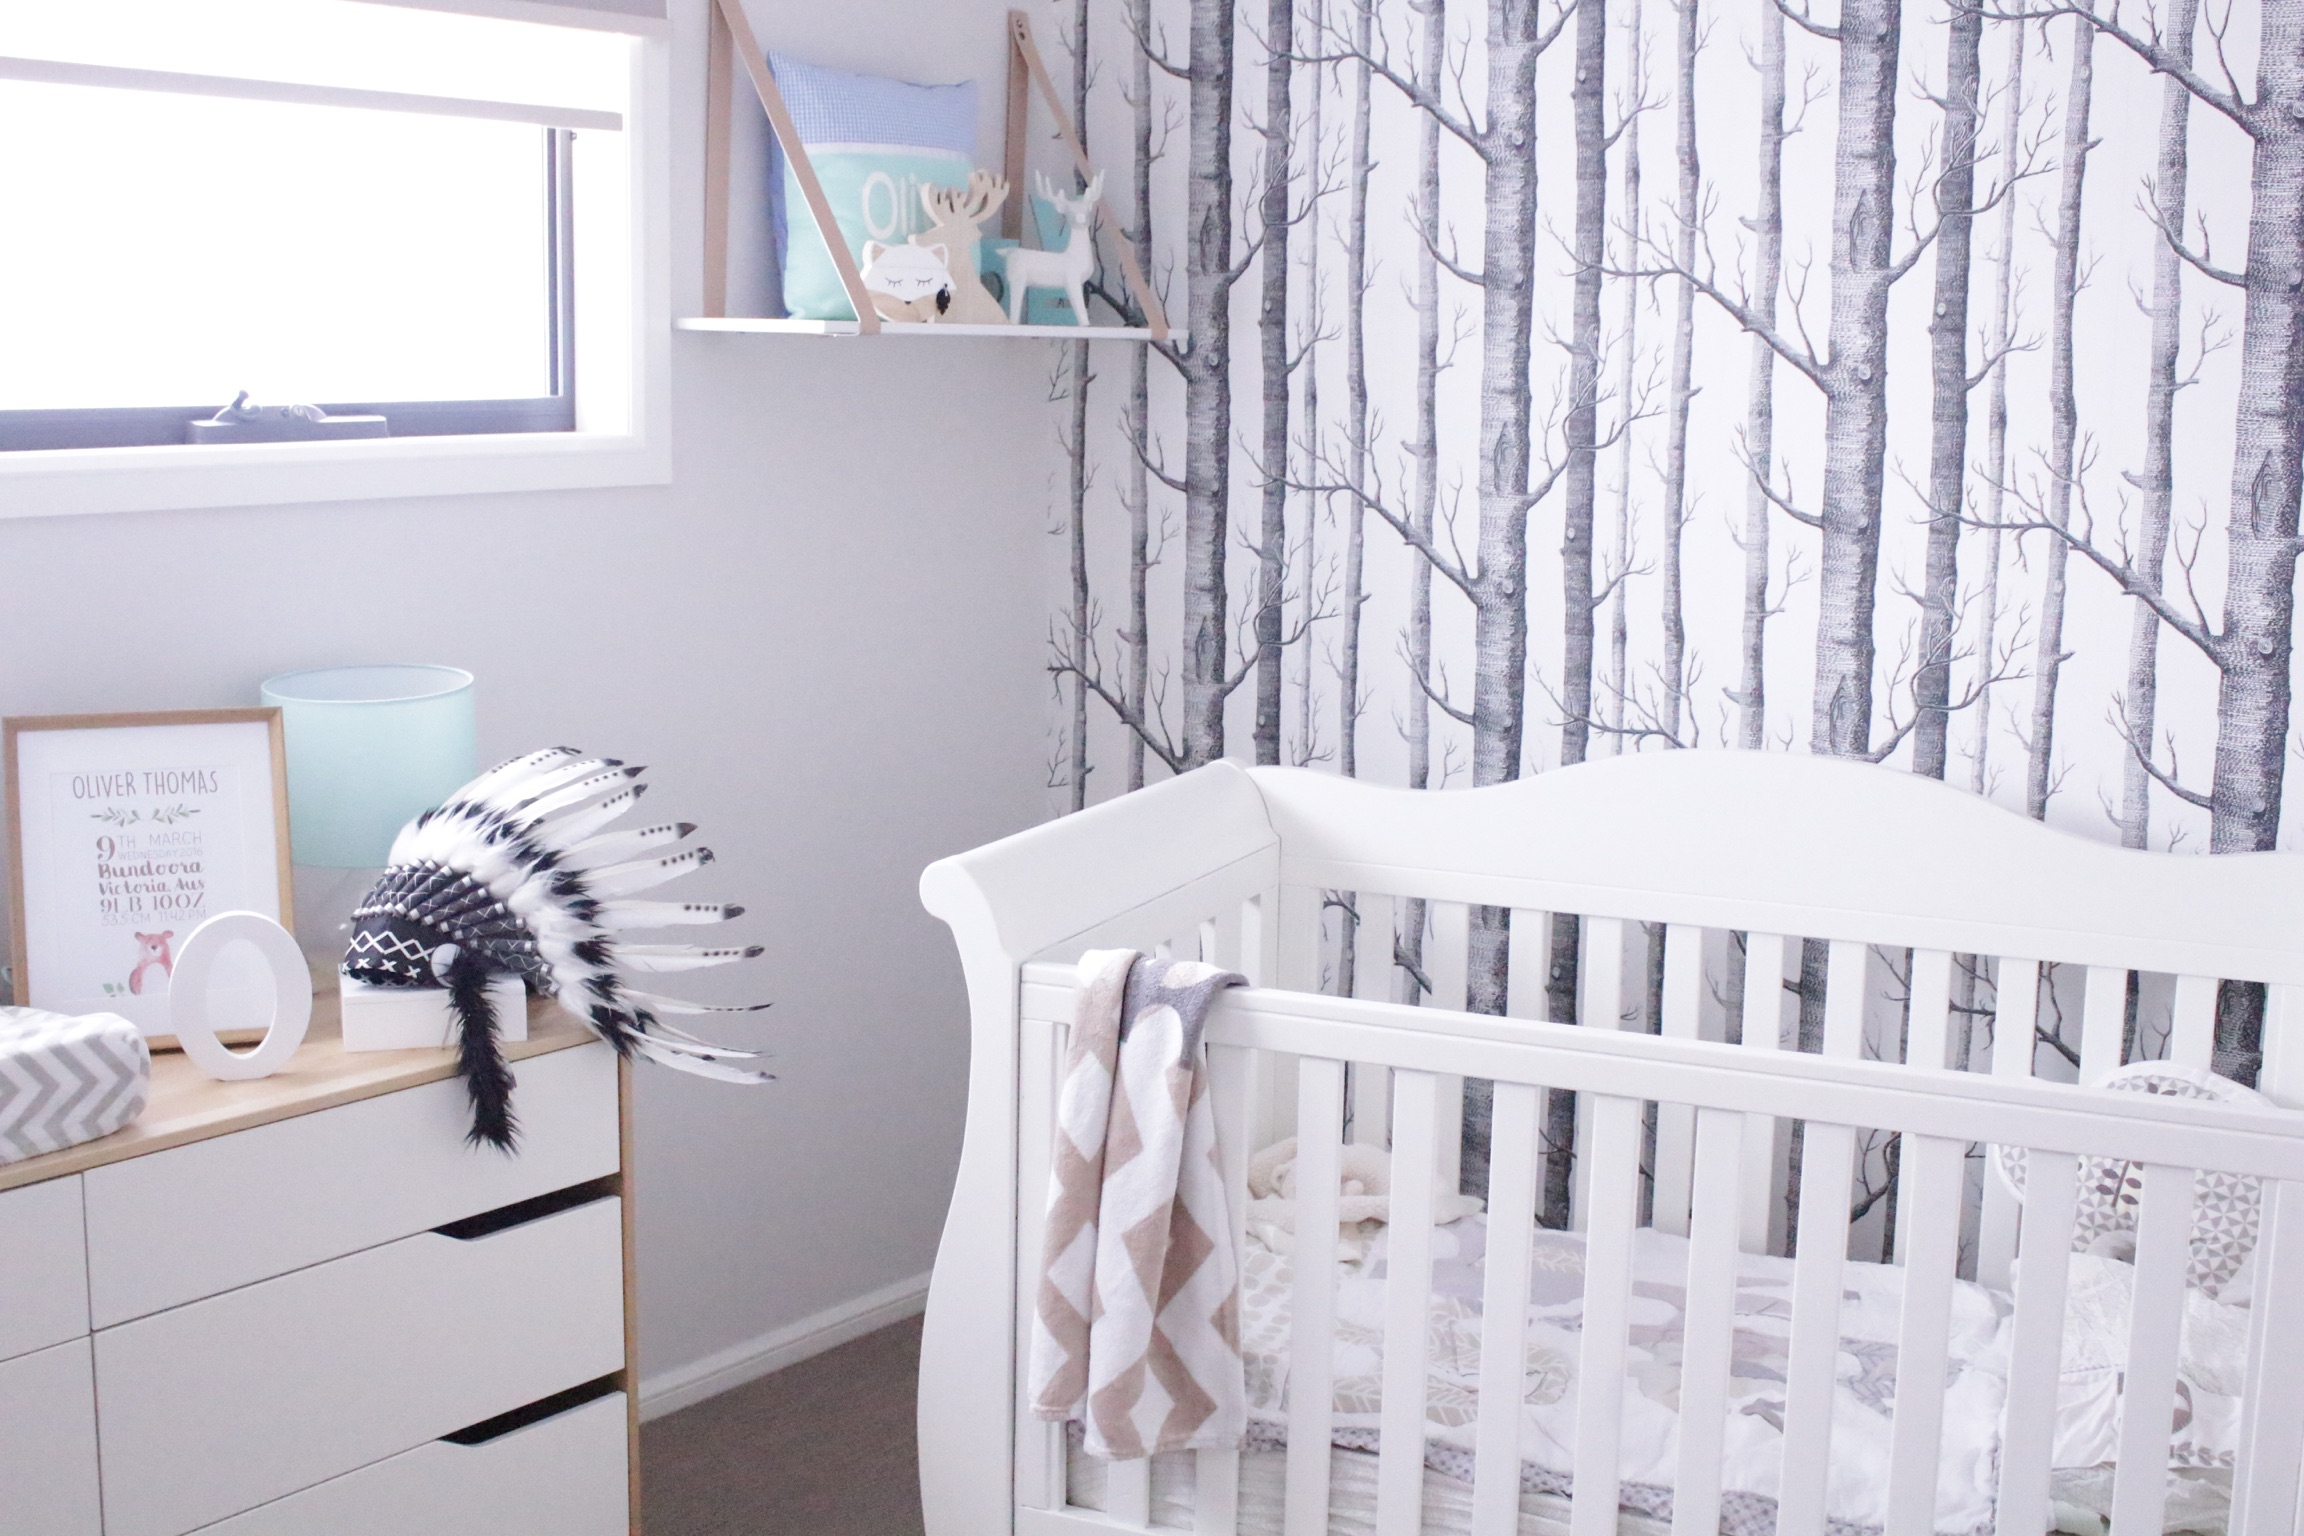 Real Nursery Style | Wood and White with Birch Tree Feature Wall | www.nestlingcollective.com